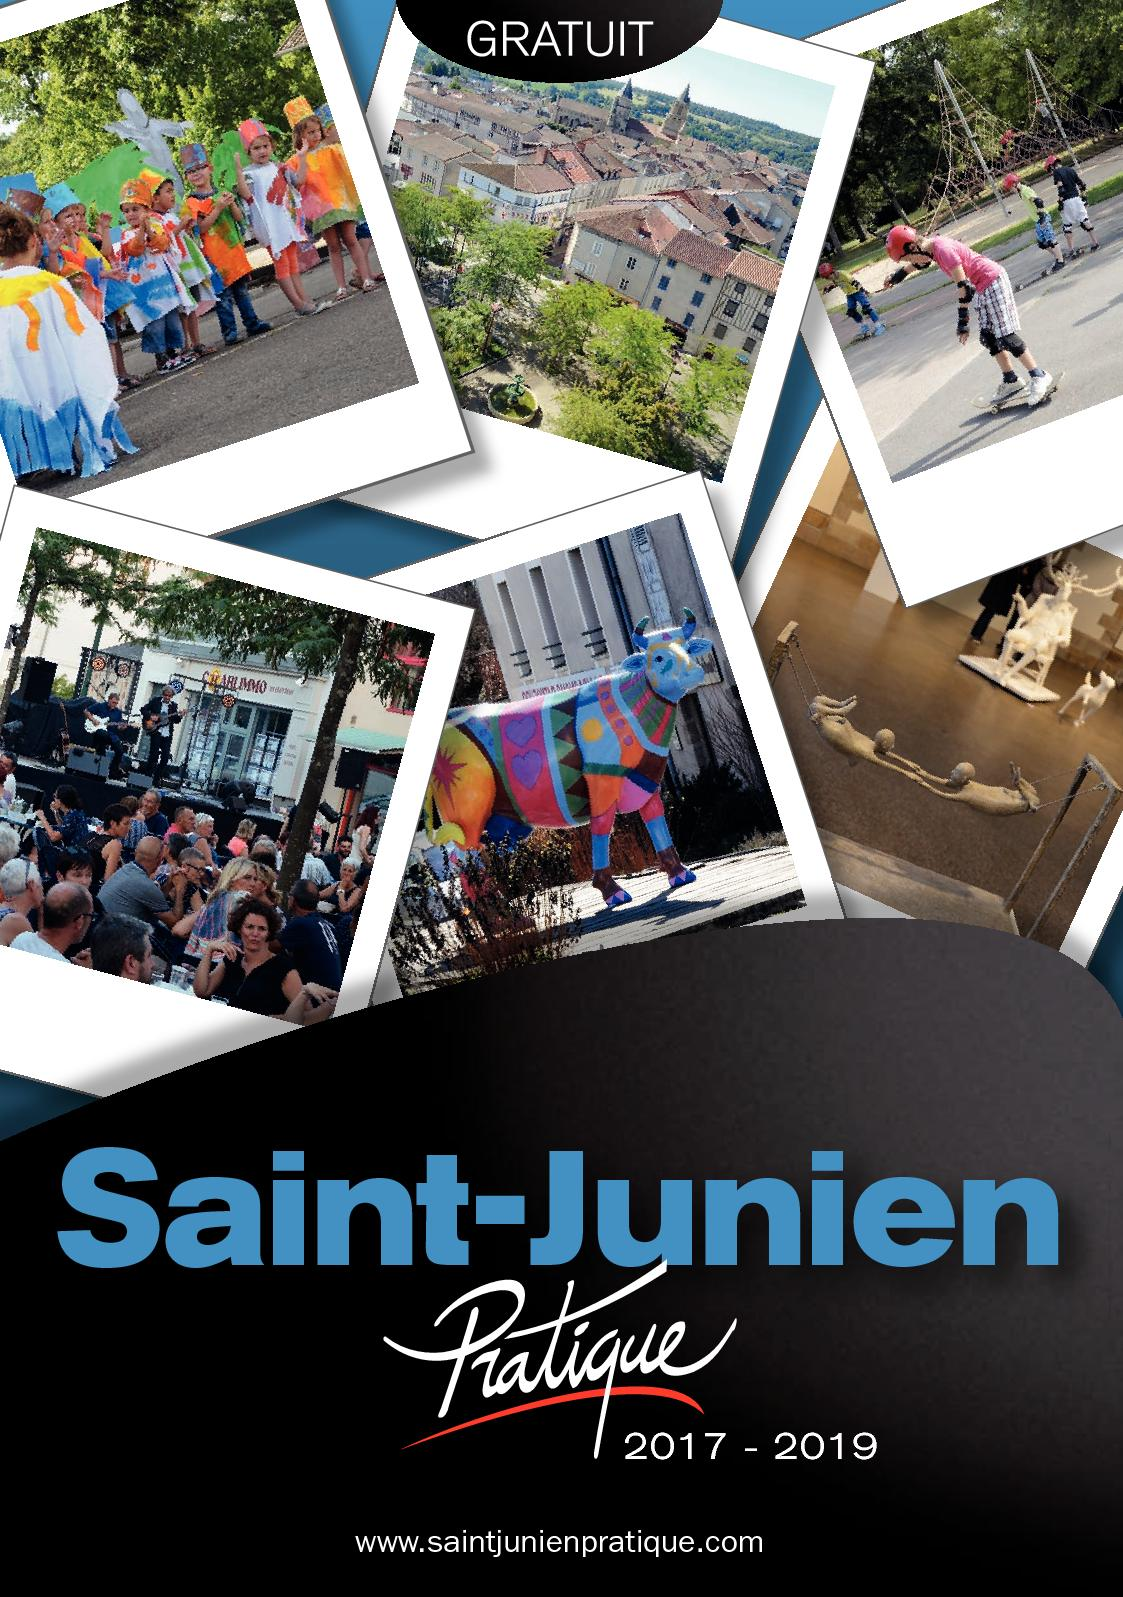 Calaméo - SAINT-JUNIEN PRATIQUE 2017-2019